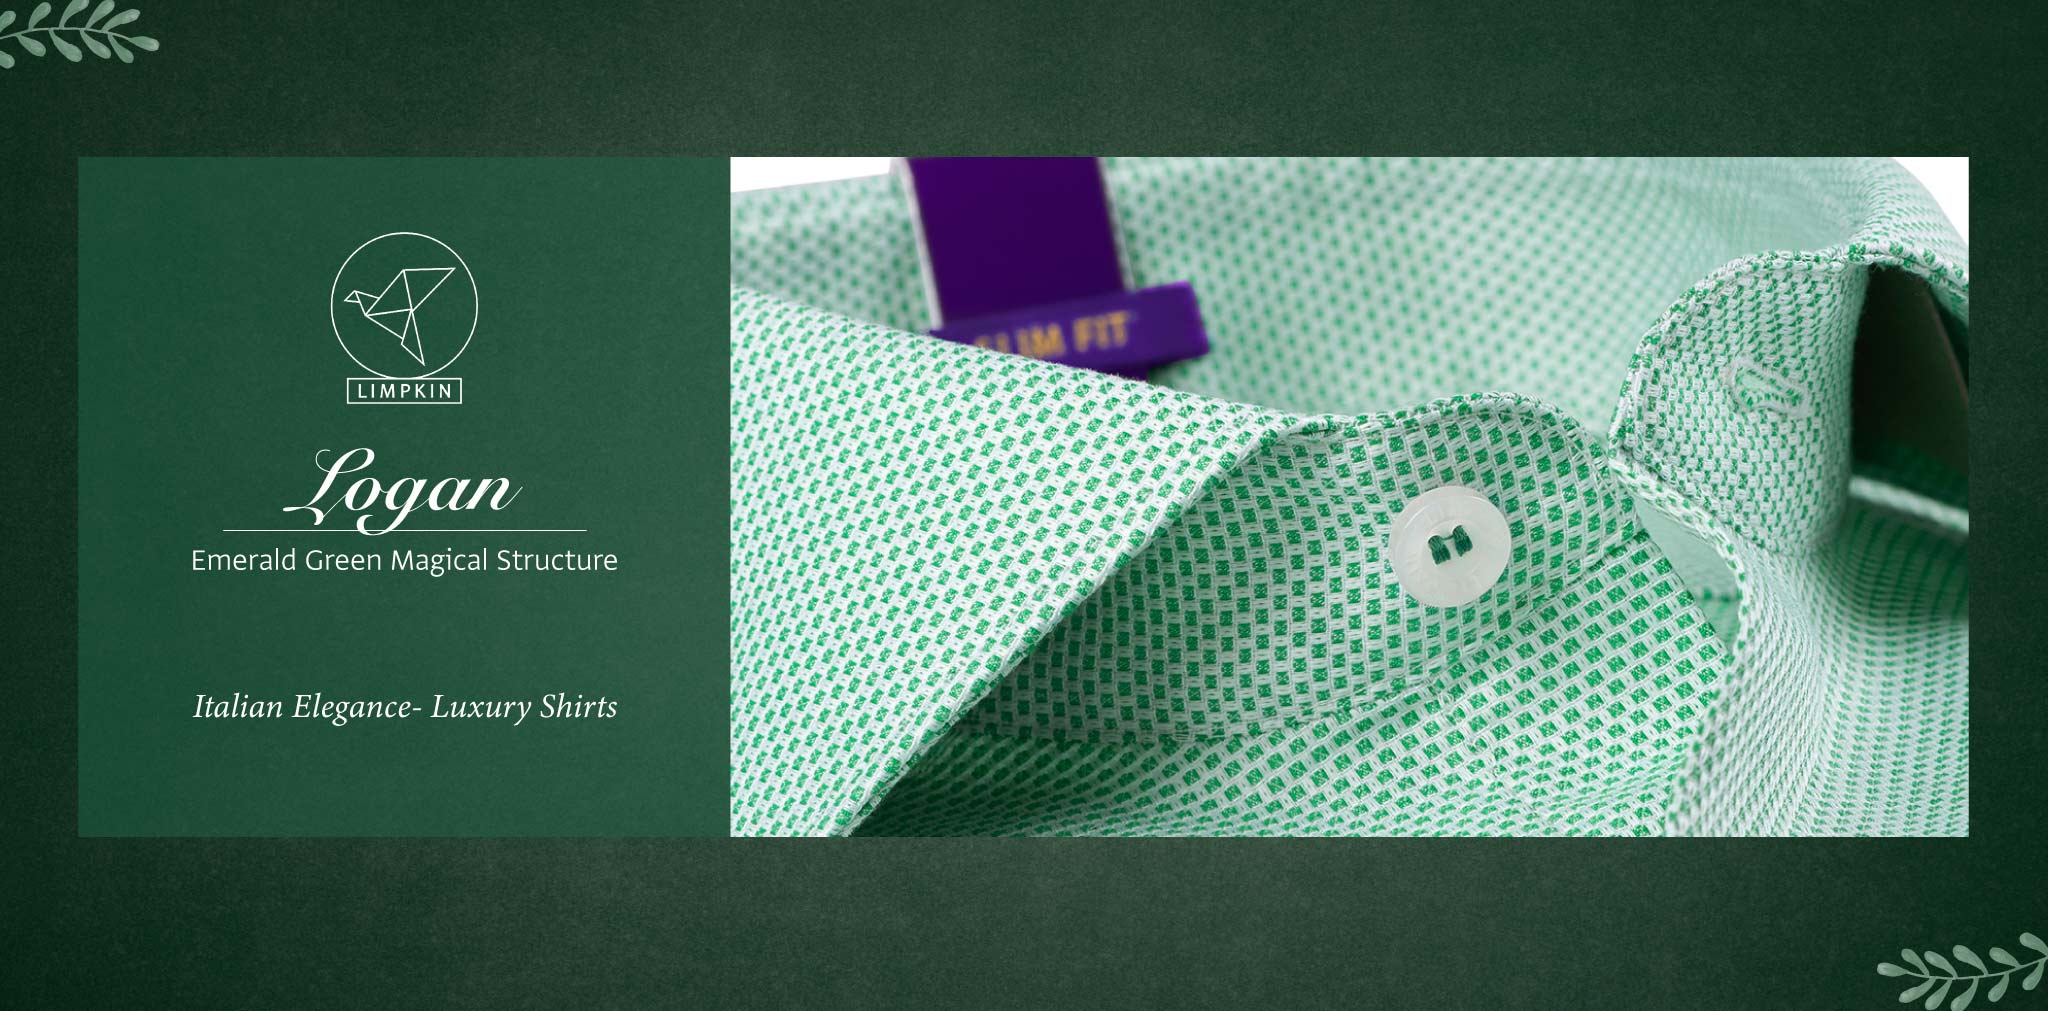 Logan- Emerald Green Magical Structure- 2 Ply Pure Egyptian Giza Cotton- Delivery from 15th May - Banner